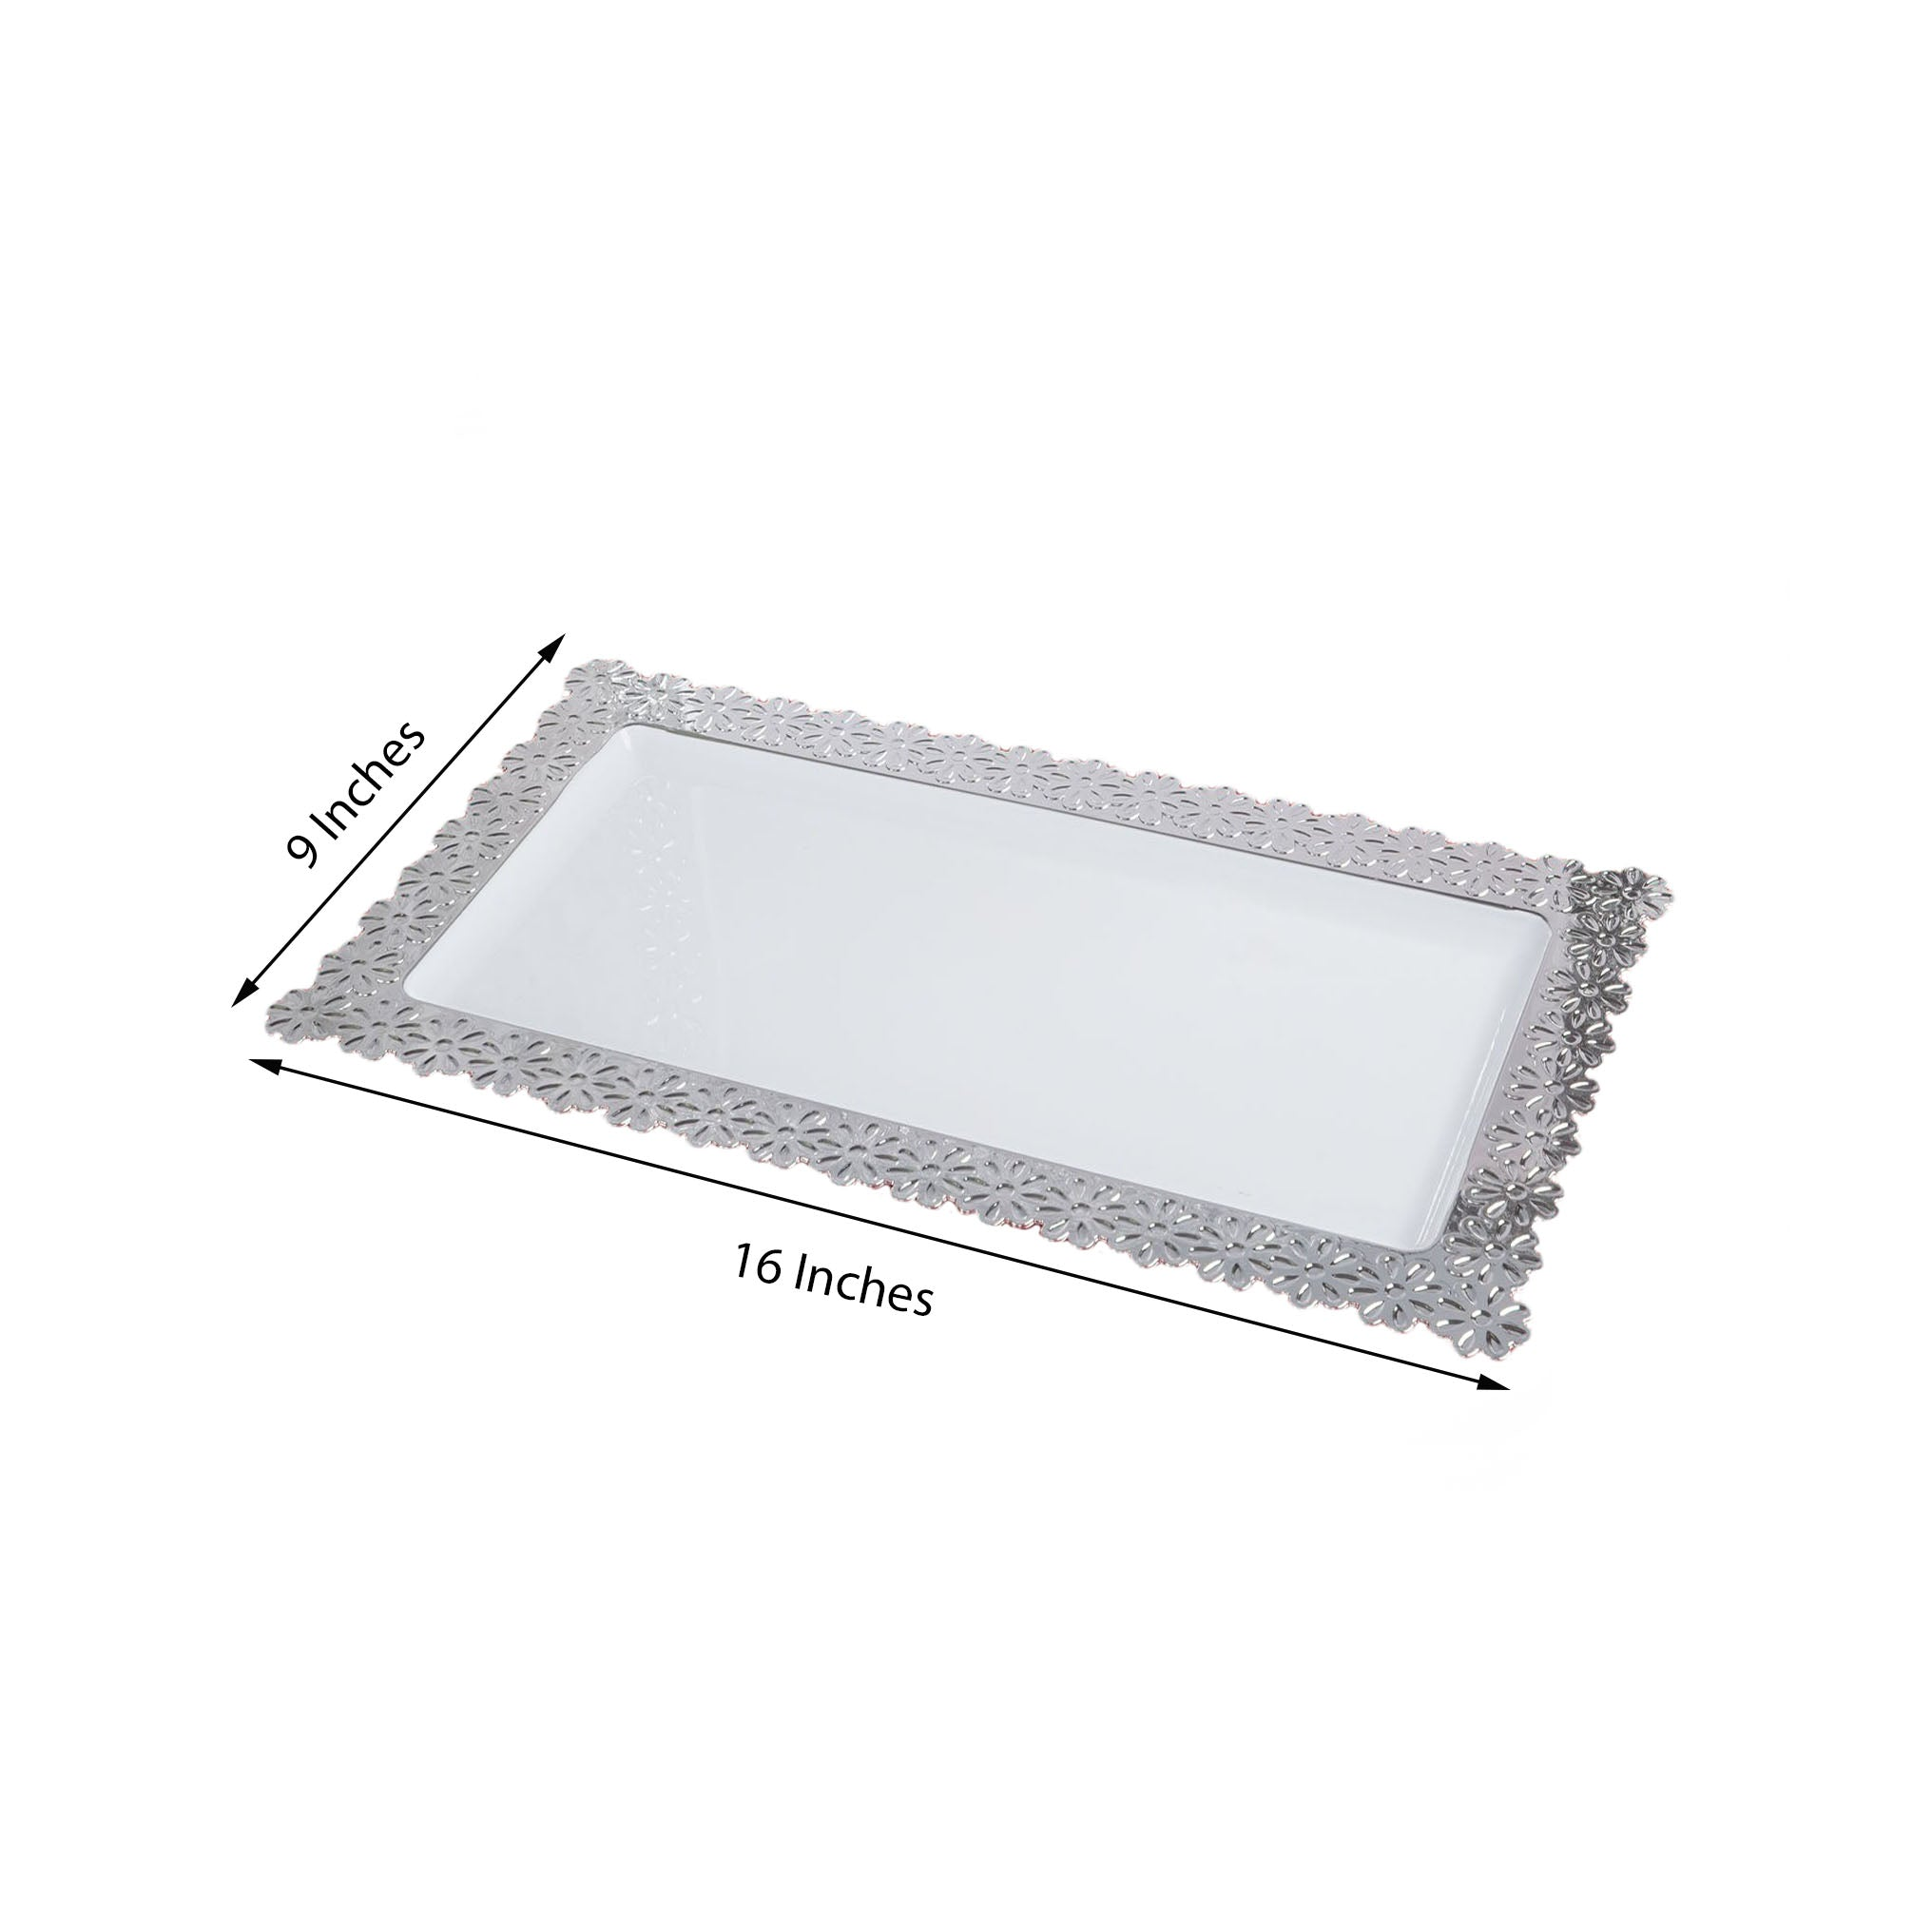 4 Pack 16 White Disposable Serving Tray With Silver Floral Edge Tableclothsfactory